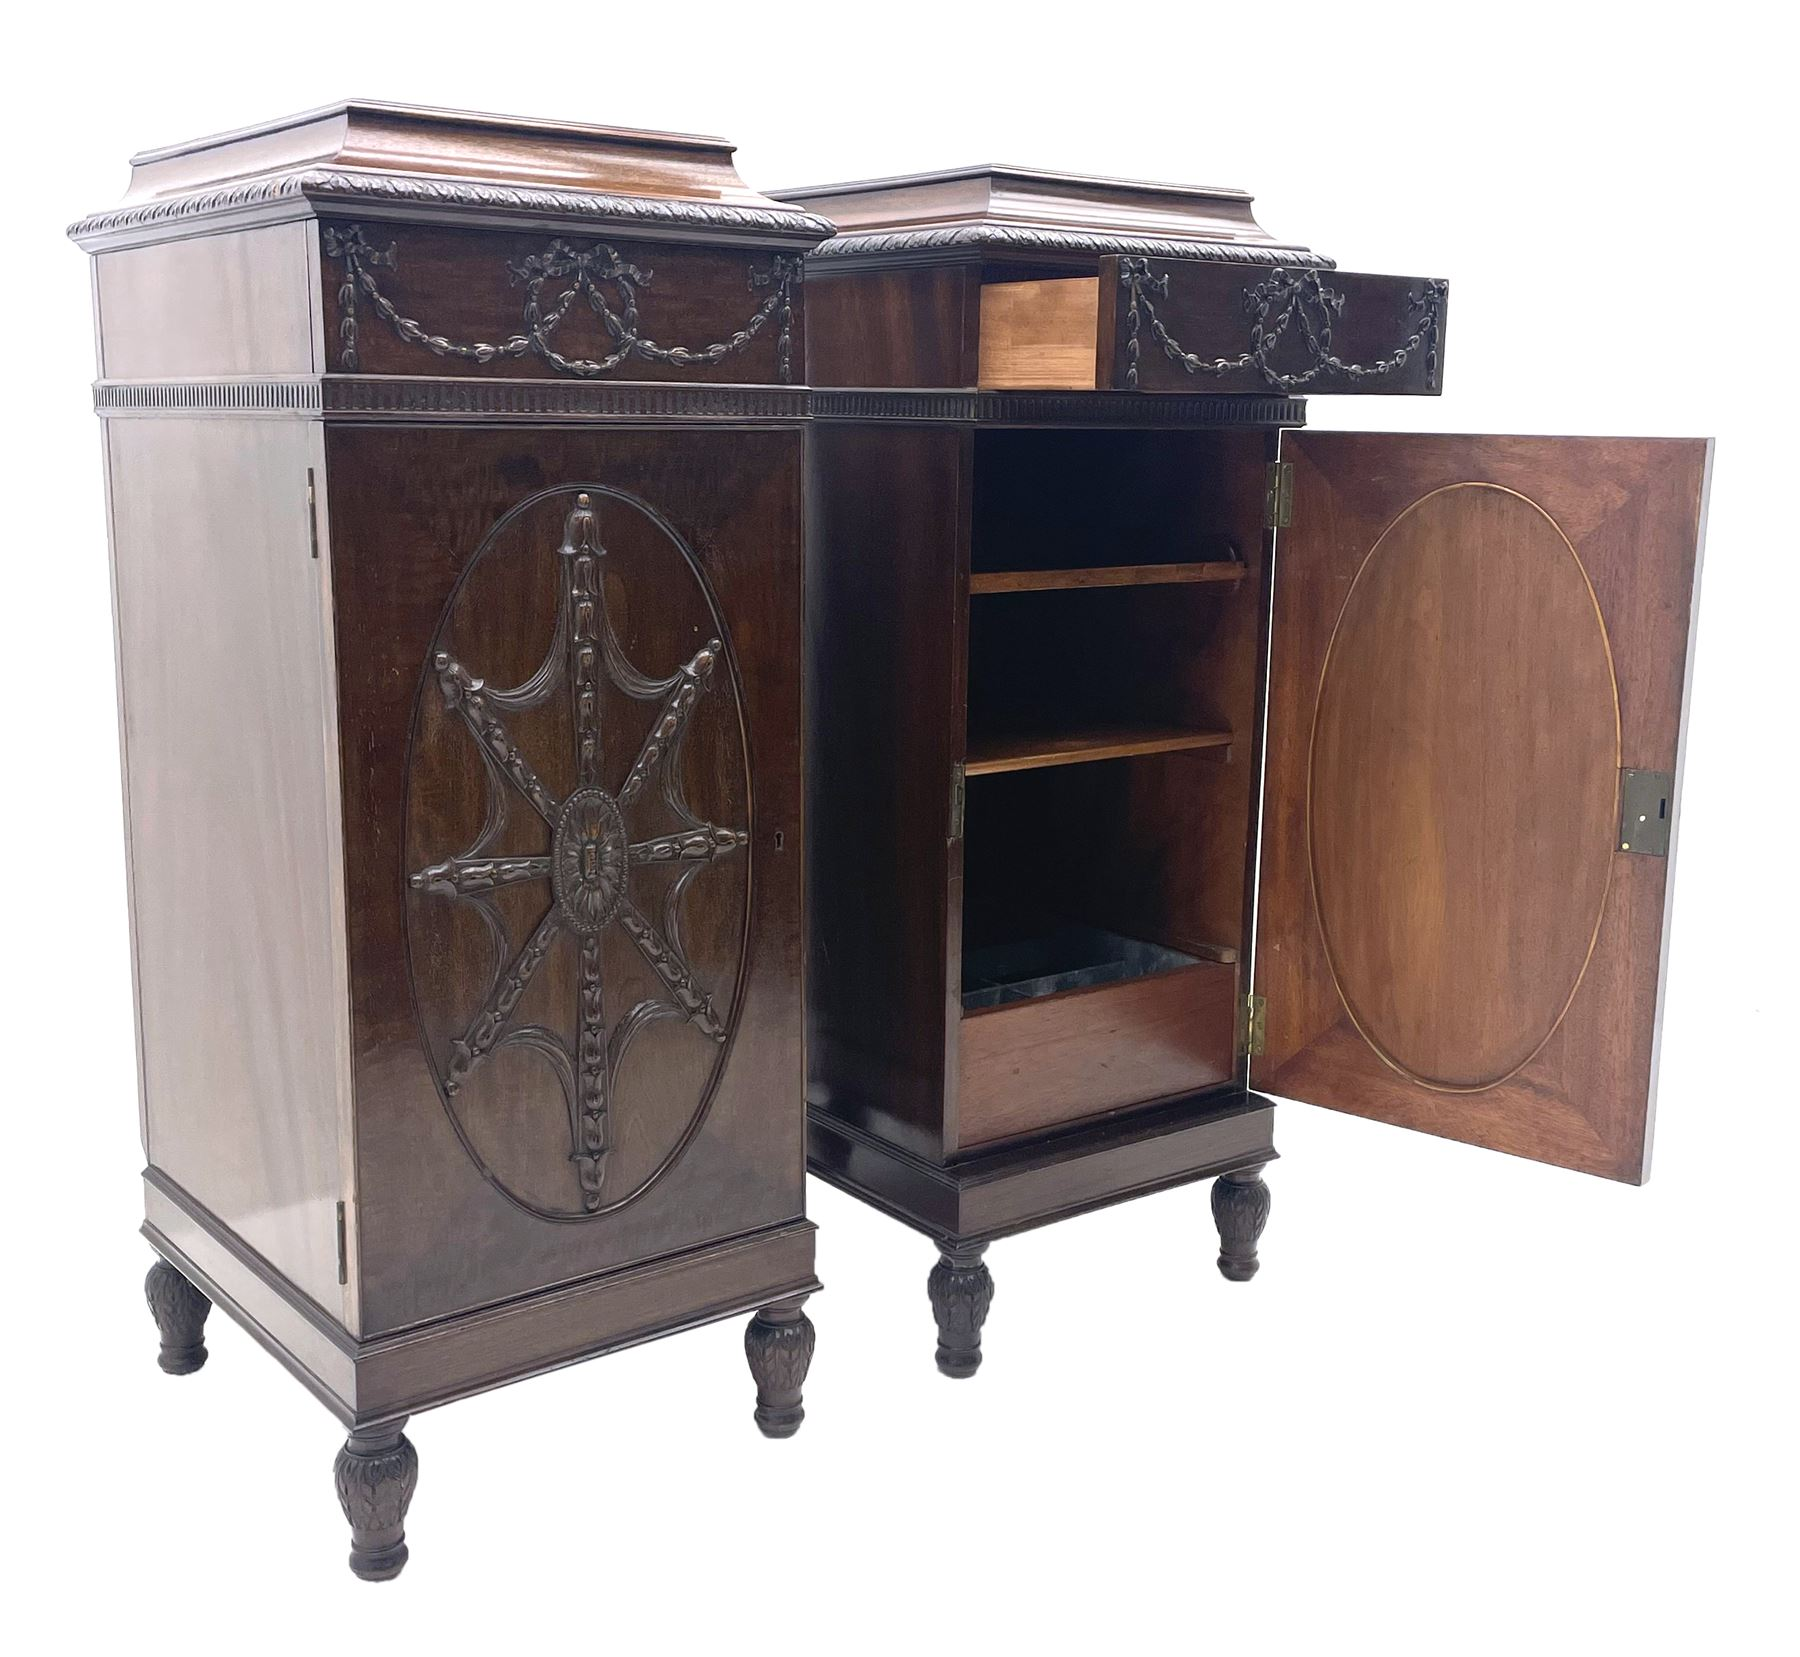 Pair early 20th century Hepplewhite style mahogany pedestal cabinets